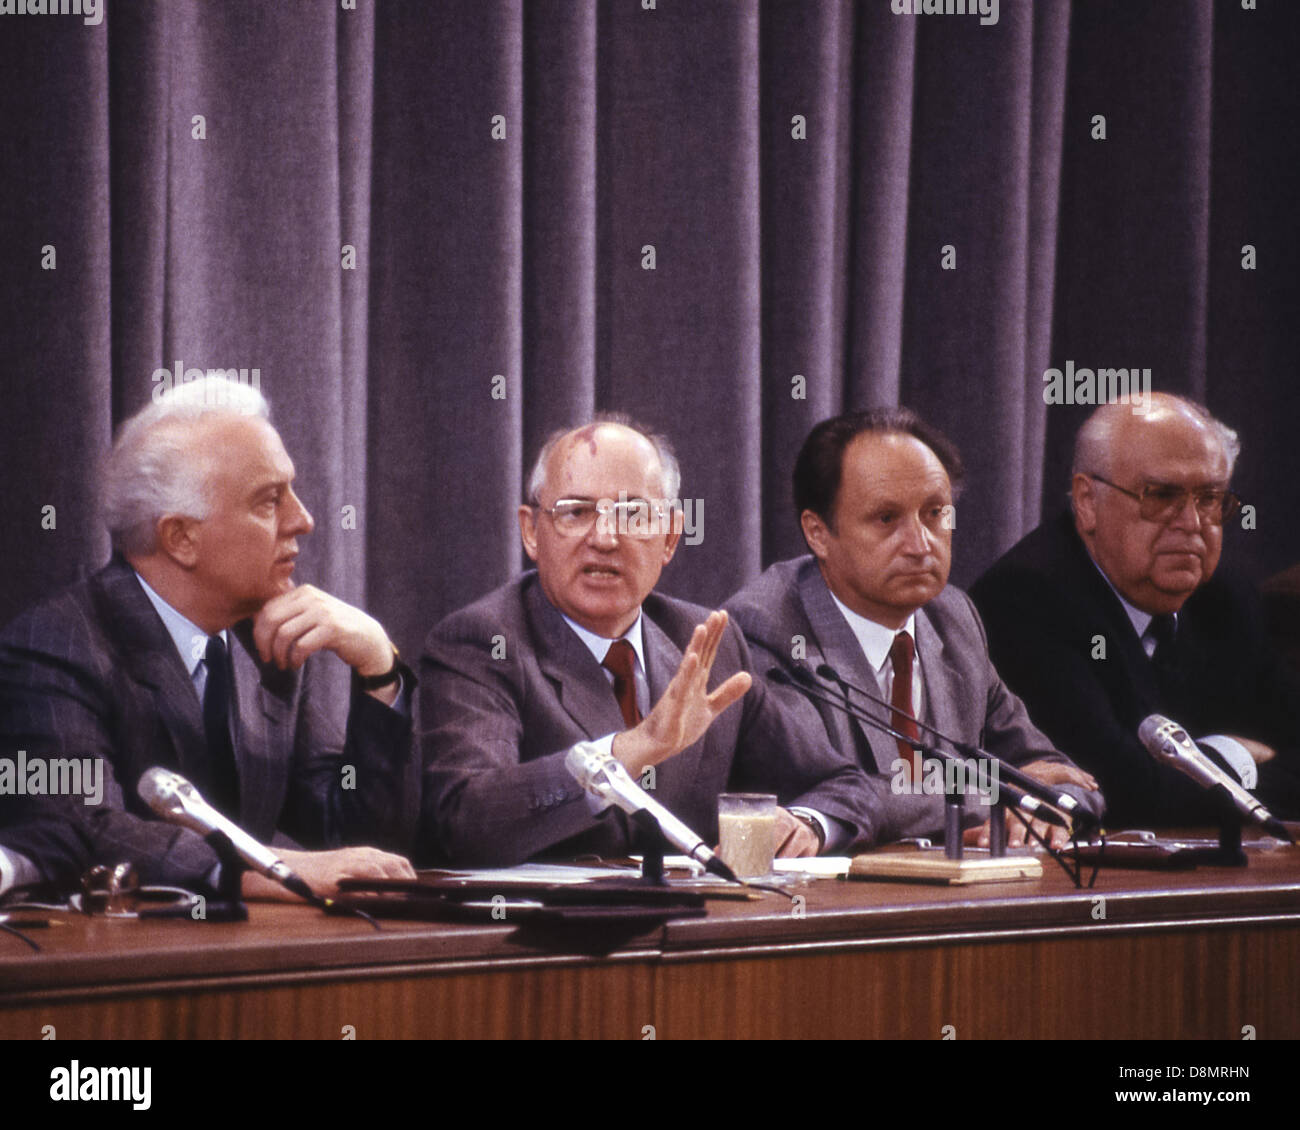 June 3, 1988 - Moscow, RU - Soviet leader MIKHAIL GORBACHEV gestures while answering a question at a press conference - Stock Image